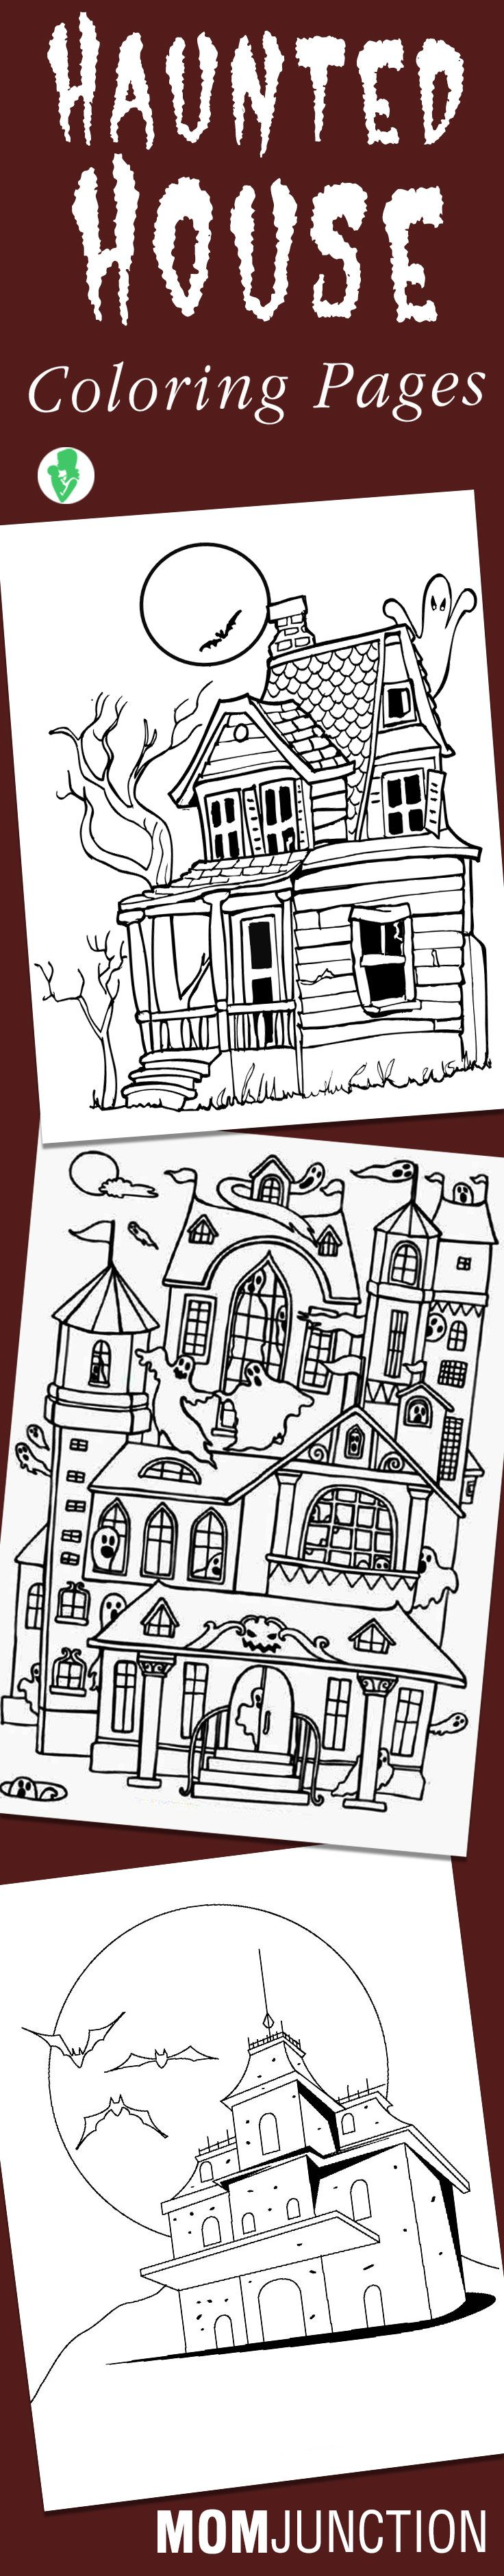 Top 10 Haunted House Coloring Pages For Your Little Ones These Can Be Quite Fun If Child Loves To Hear Ghost Stories